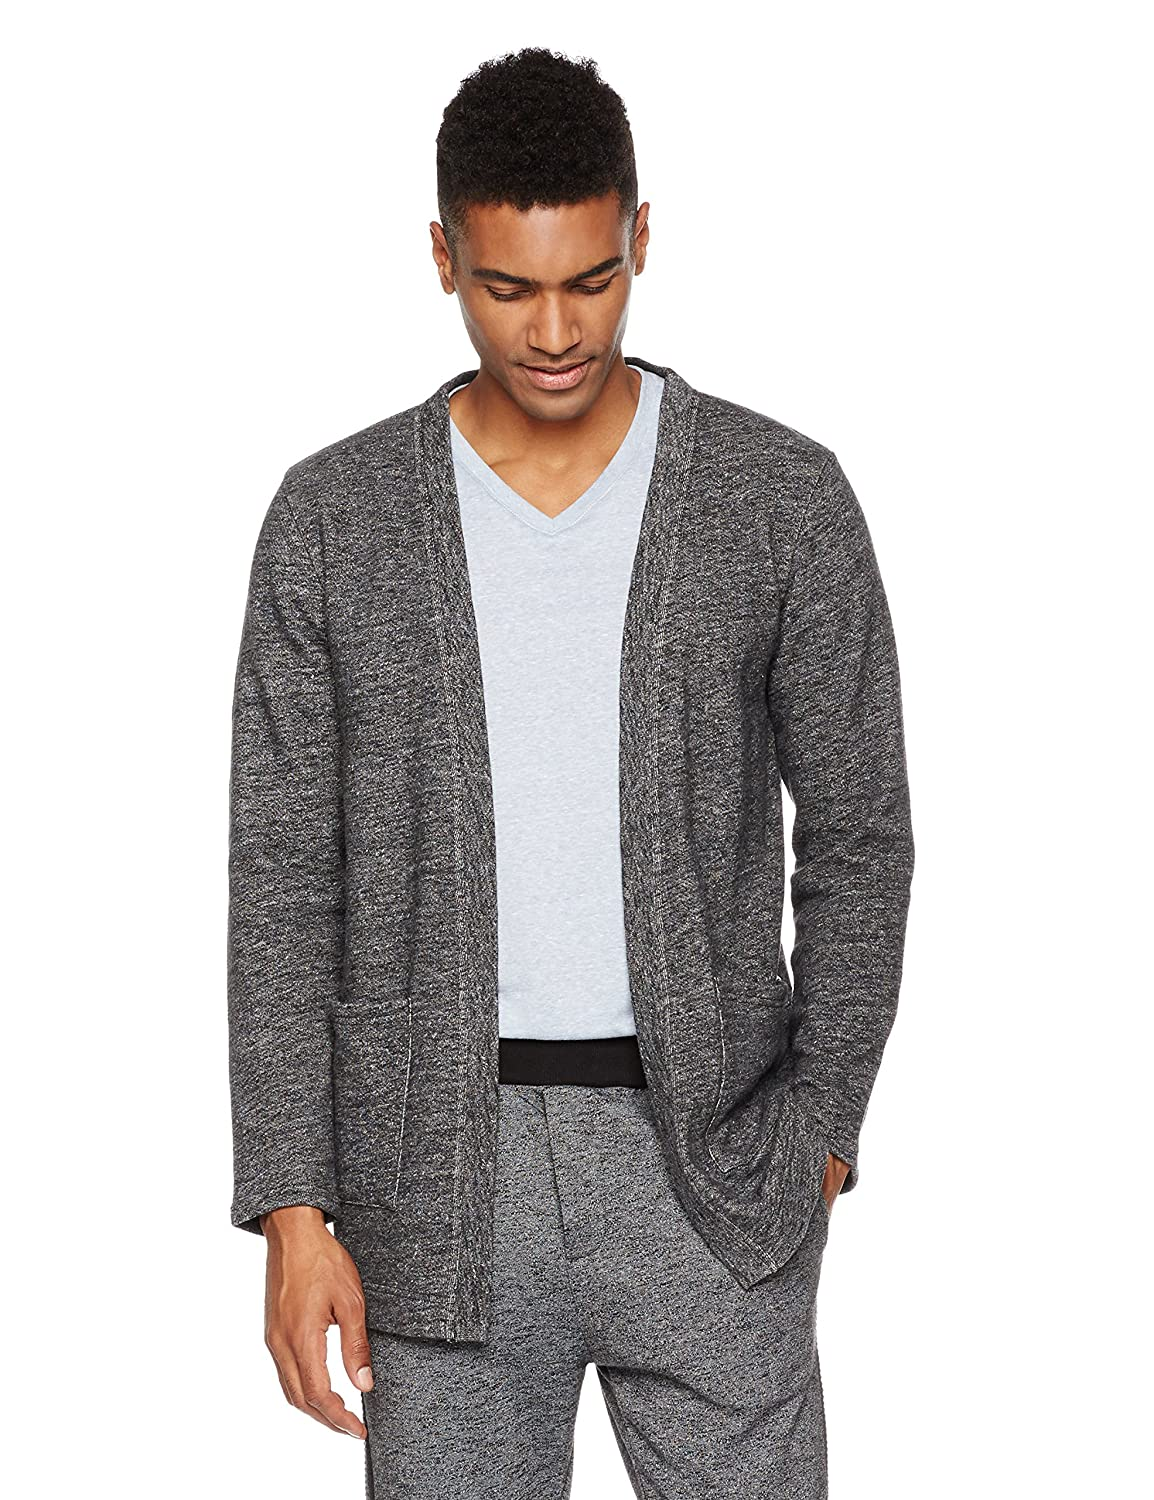 Rebel Canyon Young Men's Open Front Longline Cotton Sweatshirt Cardigan by Rebel+Canyon